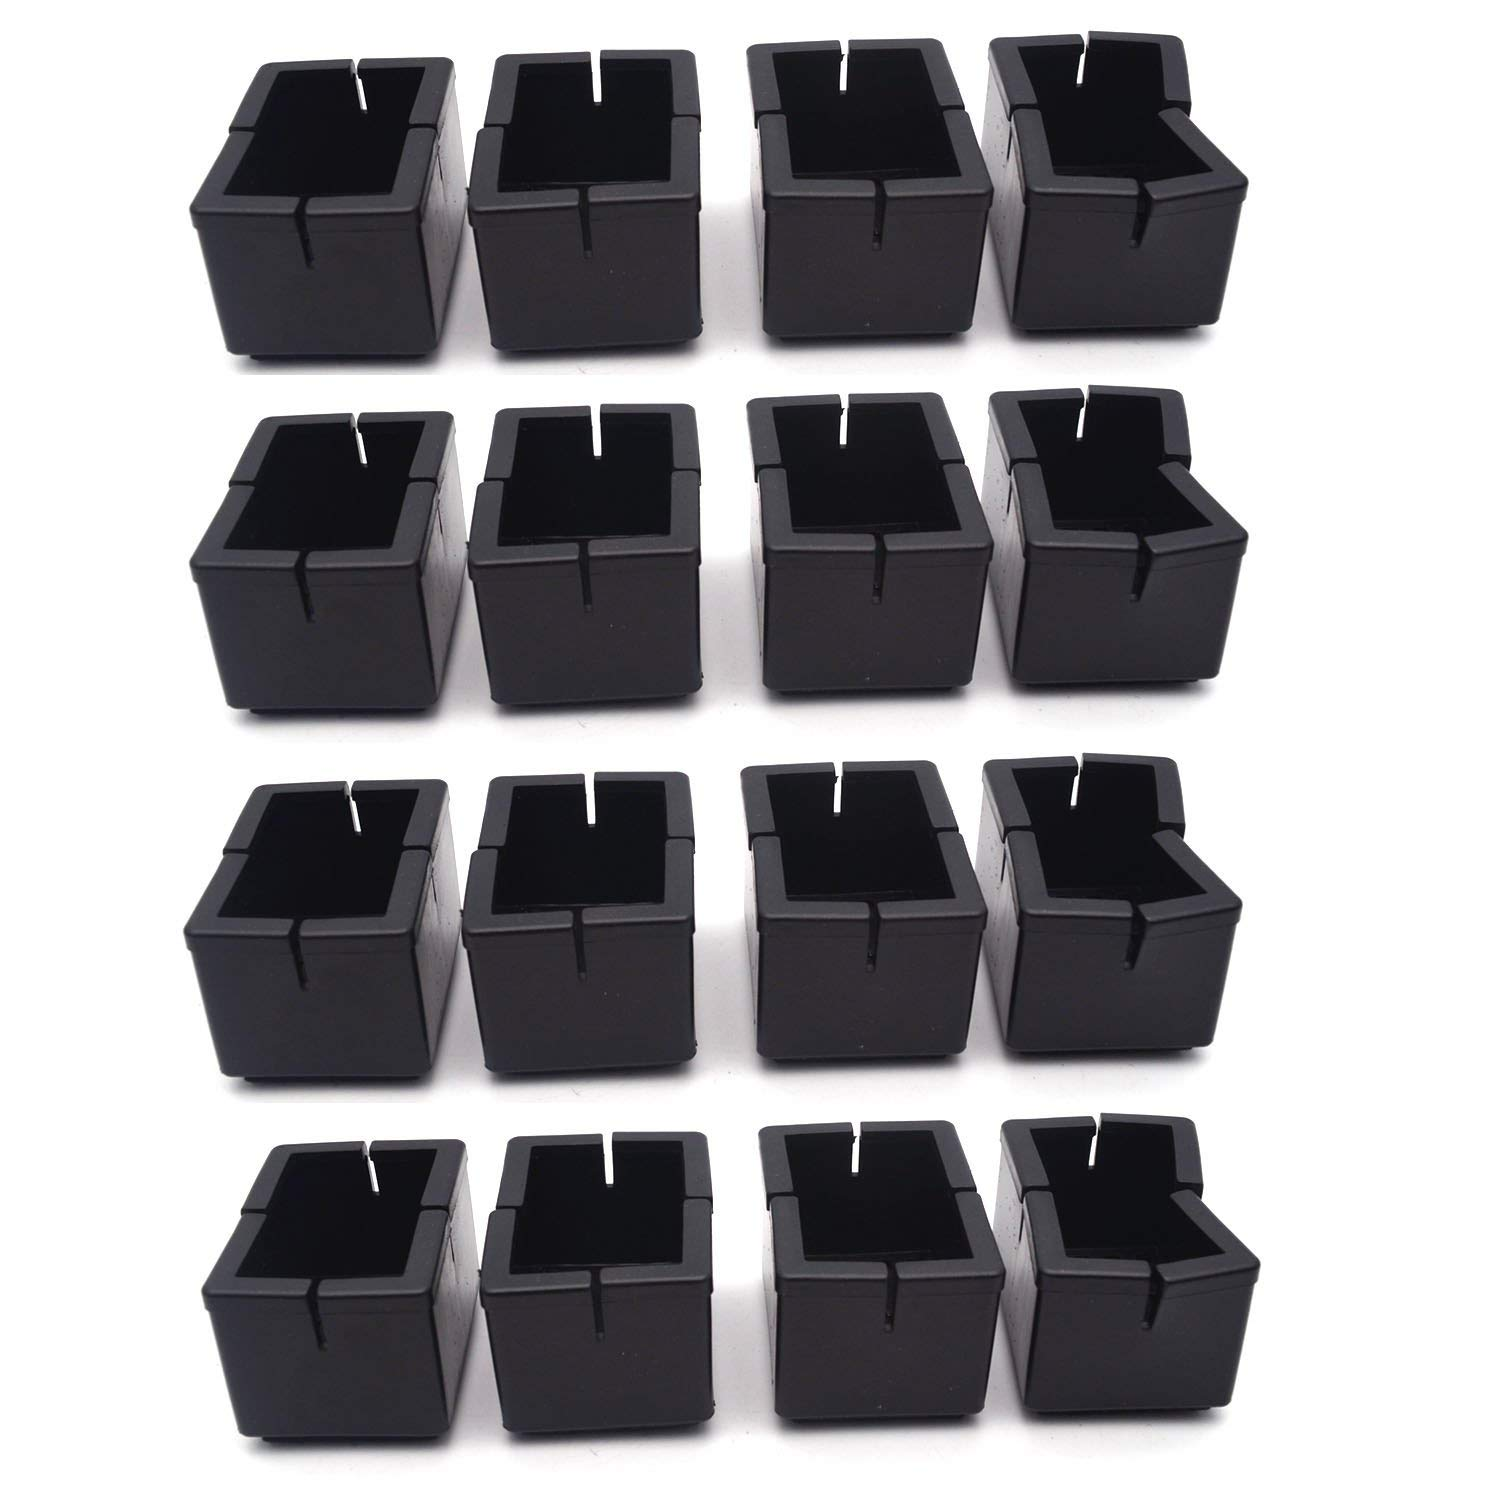 """Antrader 16pcs Silicon Rectangle Furniture Pads Floor Protector Sofa Non-Slip Chair Feet Pad Table Leg Cap with Felt Pads Length 1-7/16"""" to 1-5/8"""" (3.7cm-4.2cm), Width 5/8"""" to 7/8"""" (1.6-2.2cm) Black"""